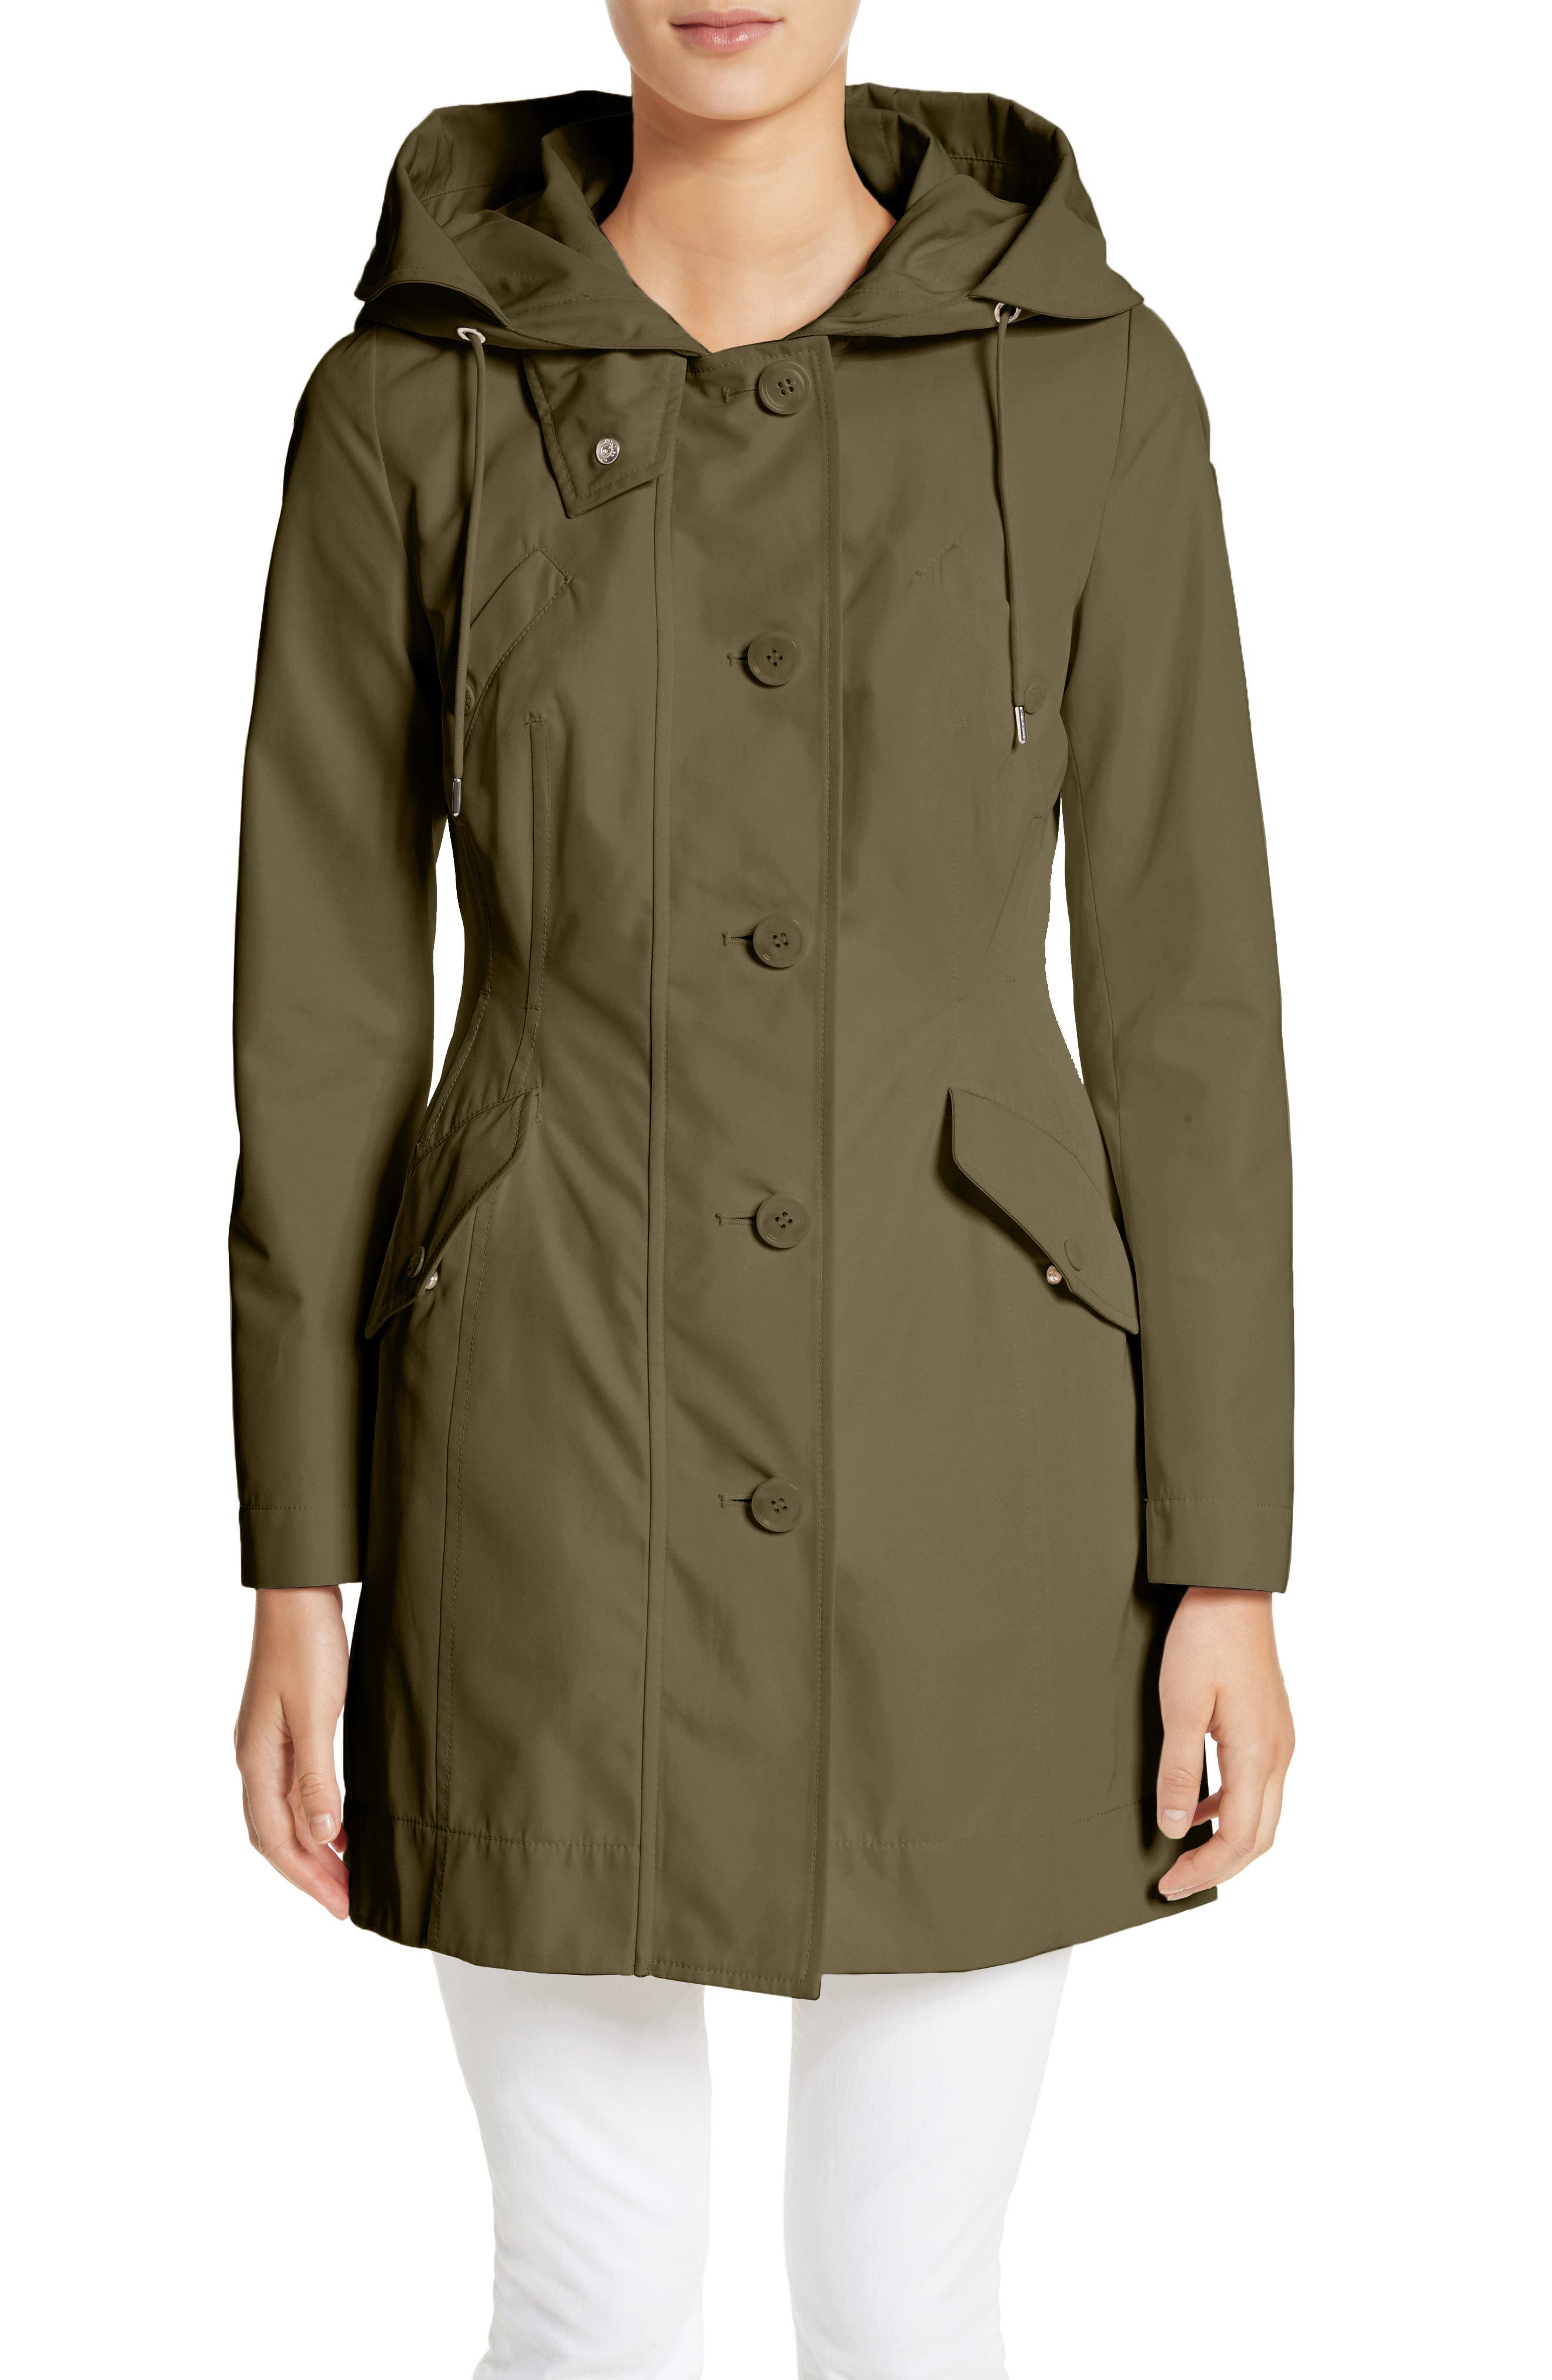 Audrey Water Resistant Hooded Raincoat,                         Main,                         color, OLIVE